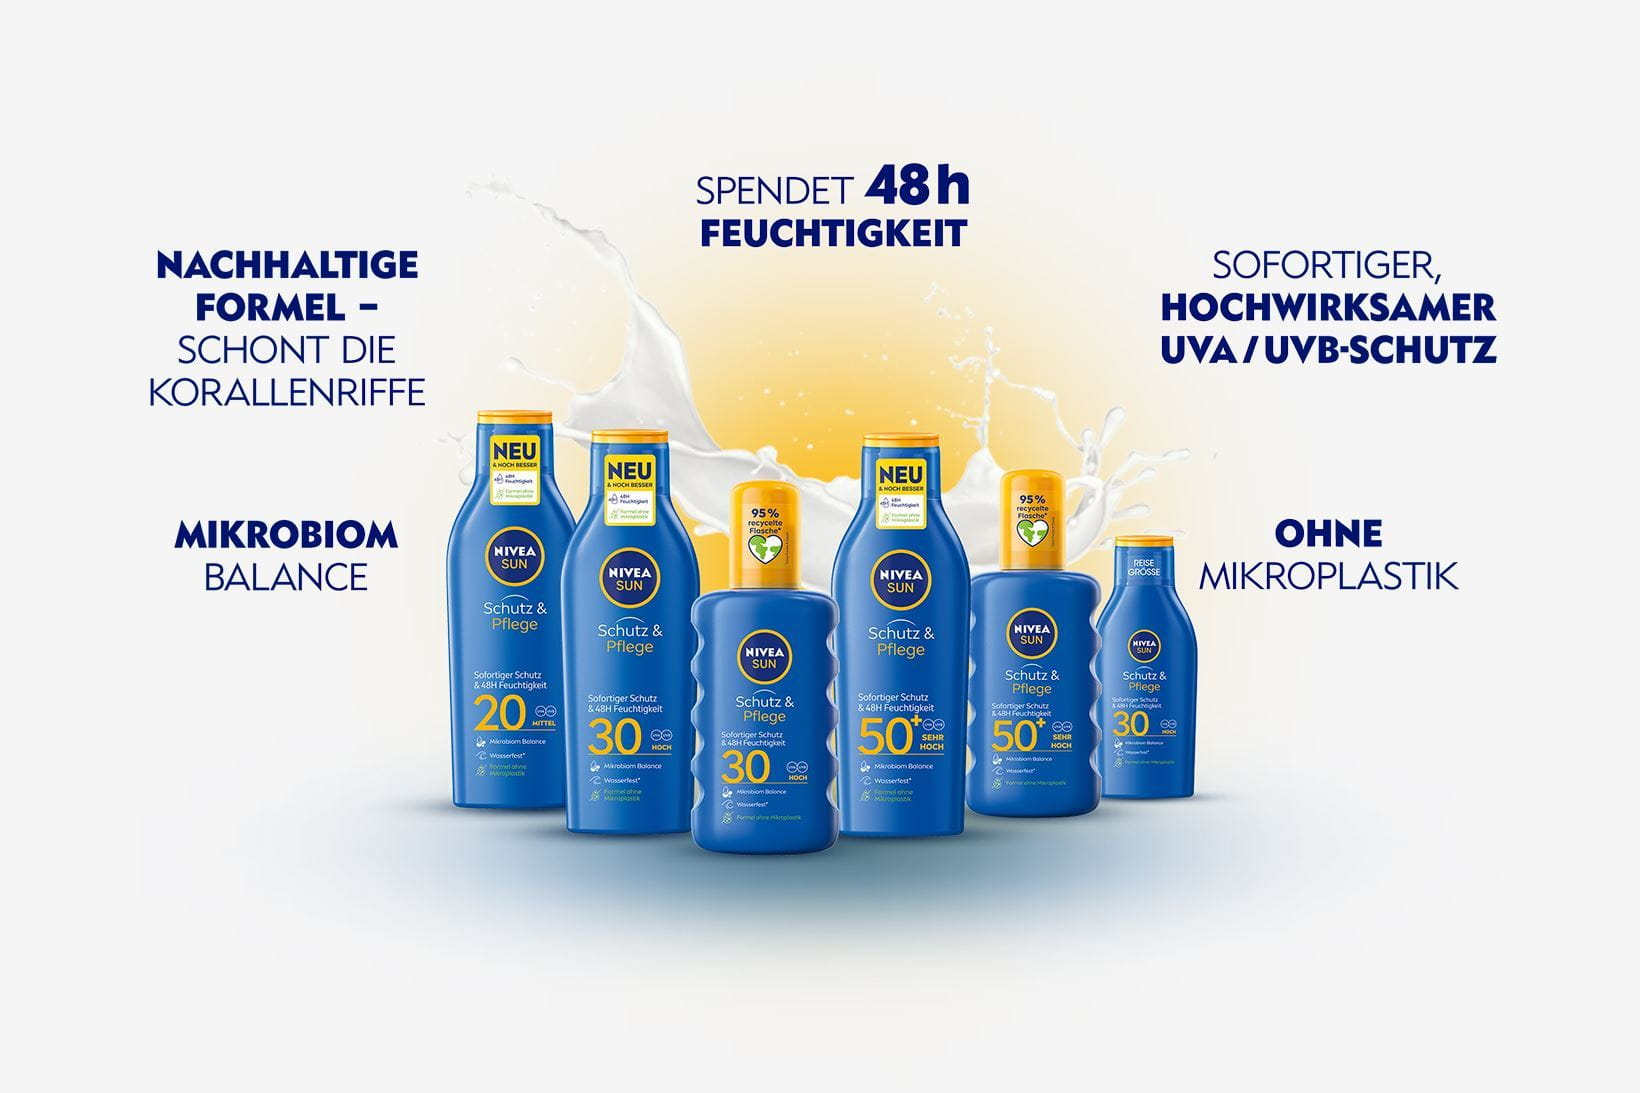 sunscreen without Oxybenzone and Octinoxate